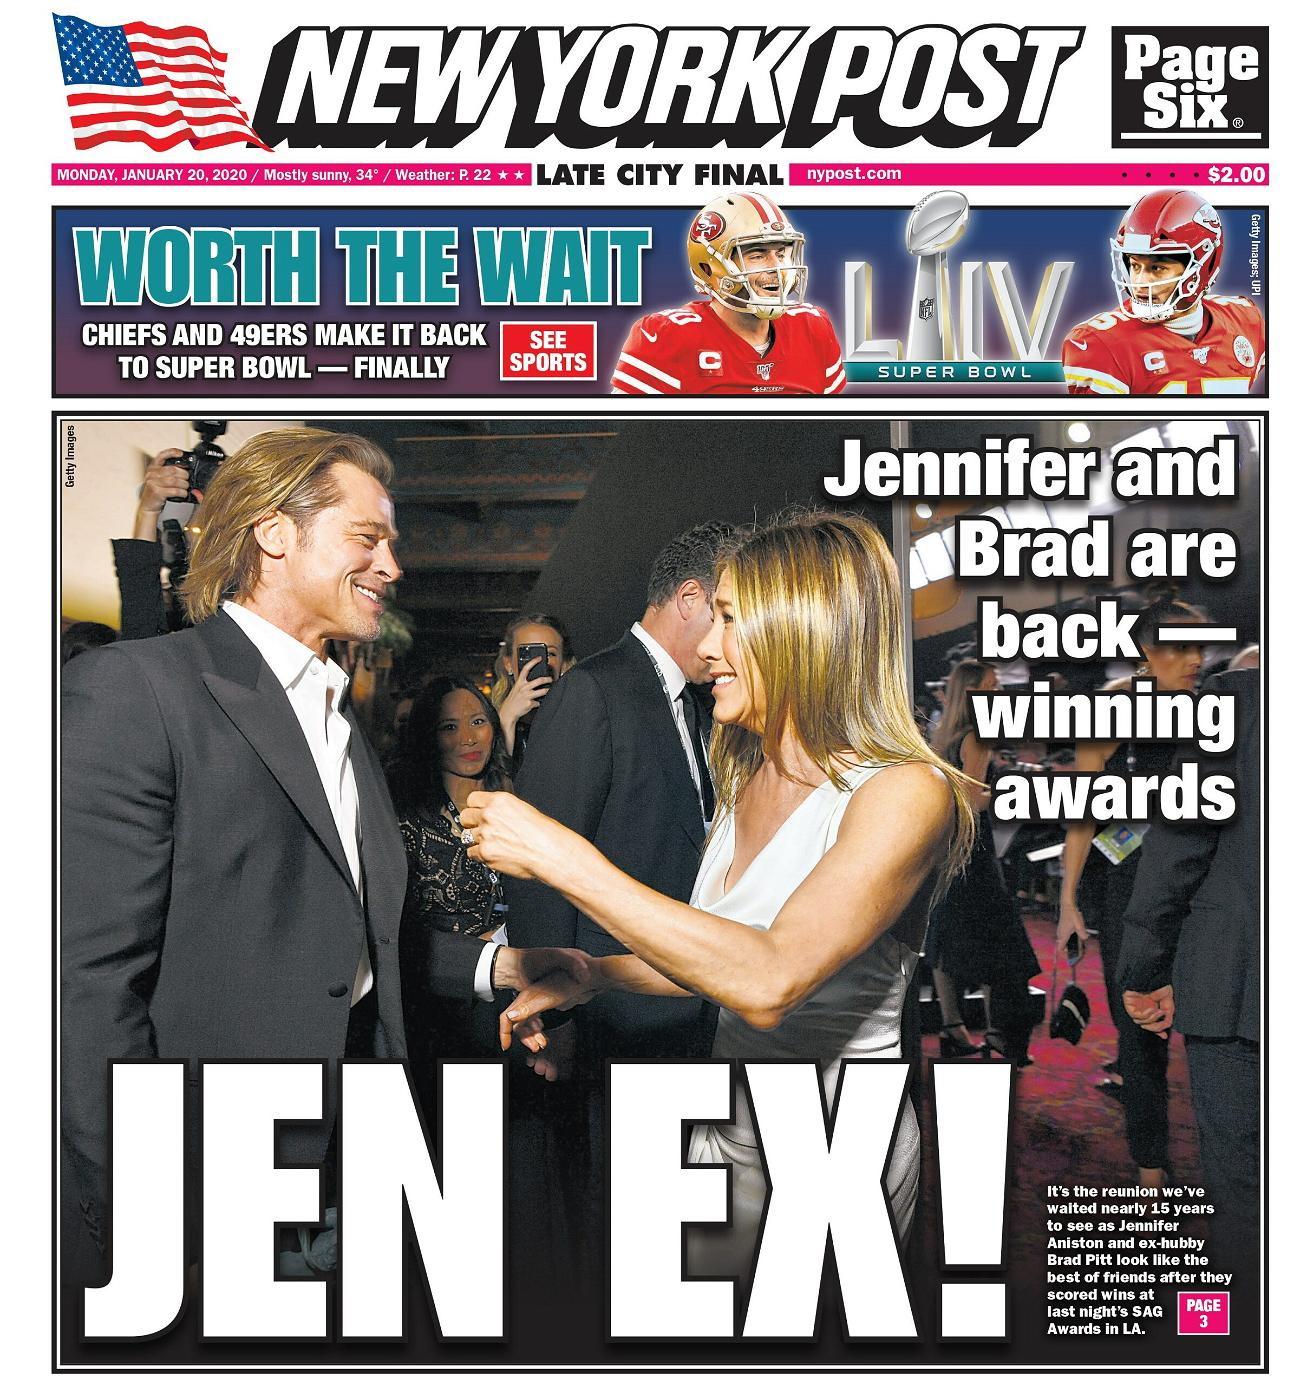 NY Post cover for Monday January 20 2020